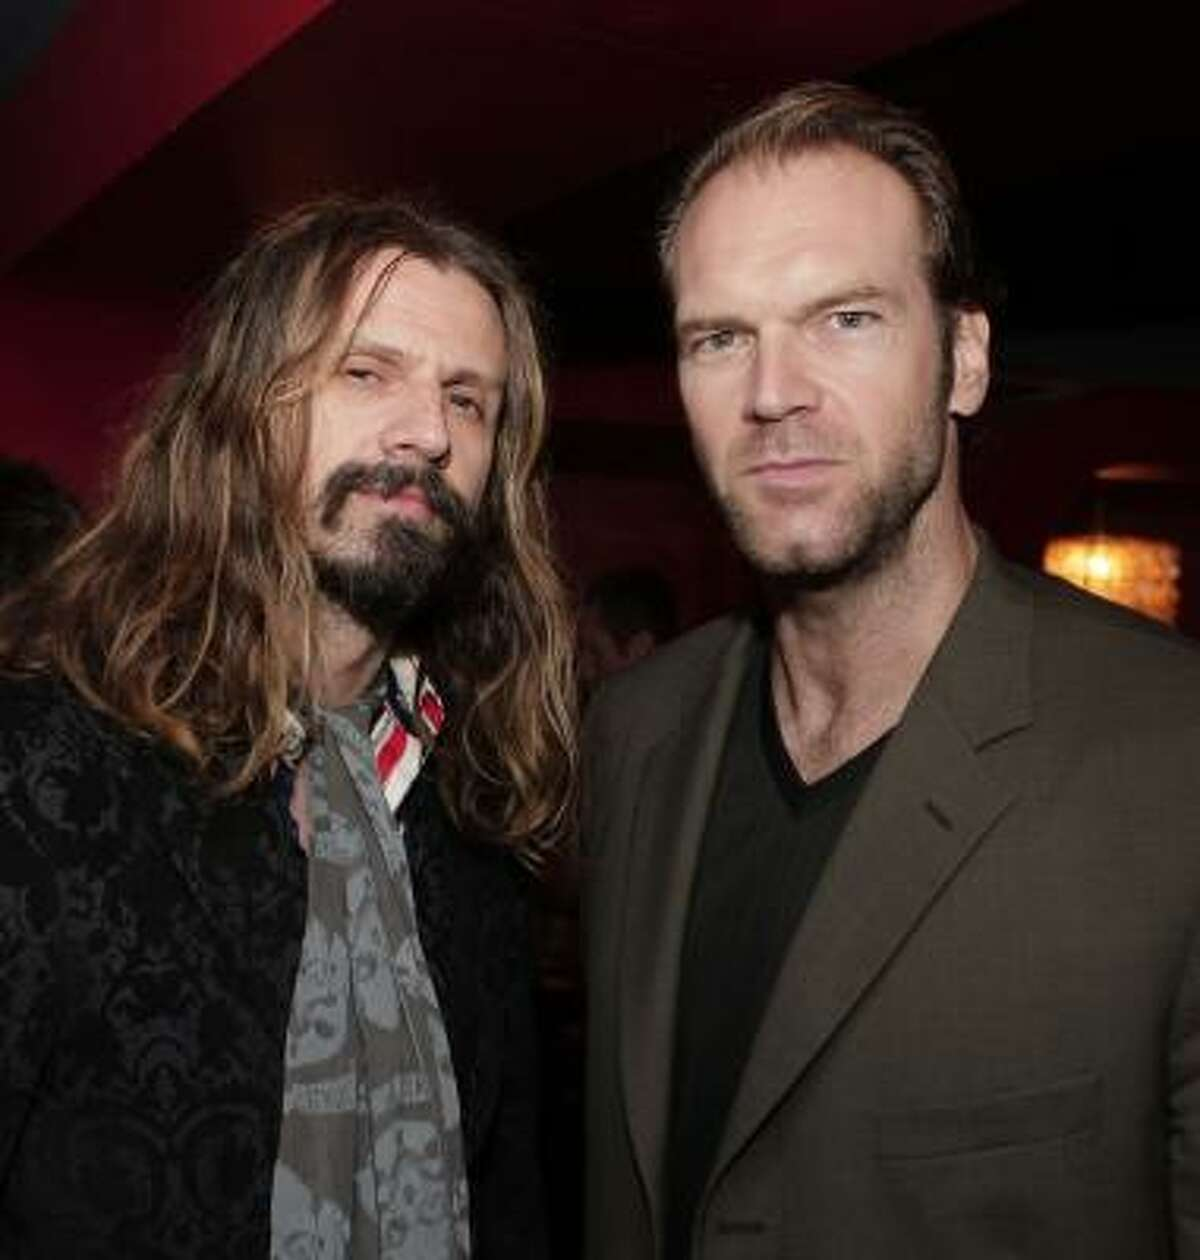 Tyler Mane, right, seen here will filmmaker Rob Zombie, left, will appear at CT Horrorfest. Mane's credits includeHalloween, Halloween II, 247 degrees, Compound Fracture, Devil May Care, The Devil's Rejects, X-Men, Penance Lane, Troy, and was a WCW wrestler.